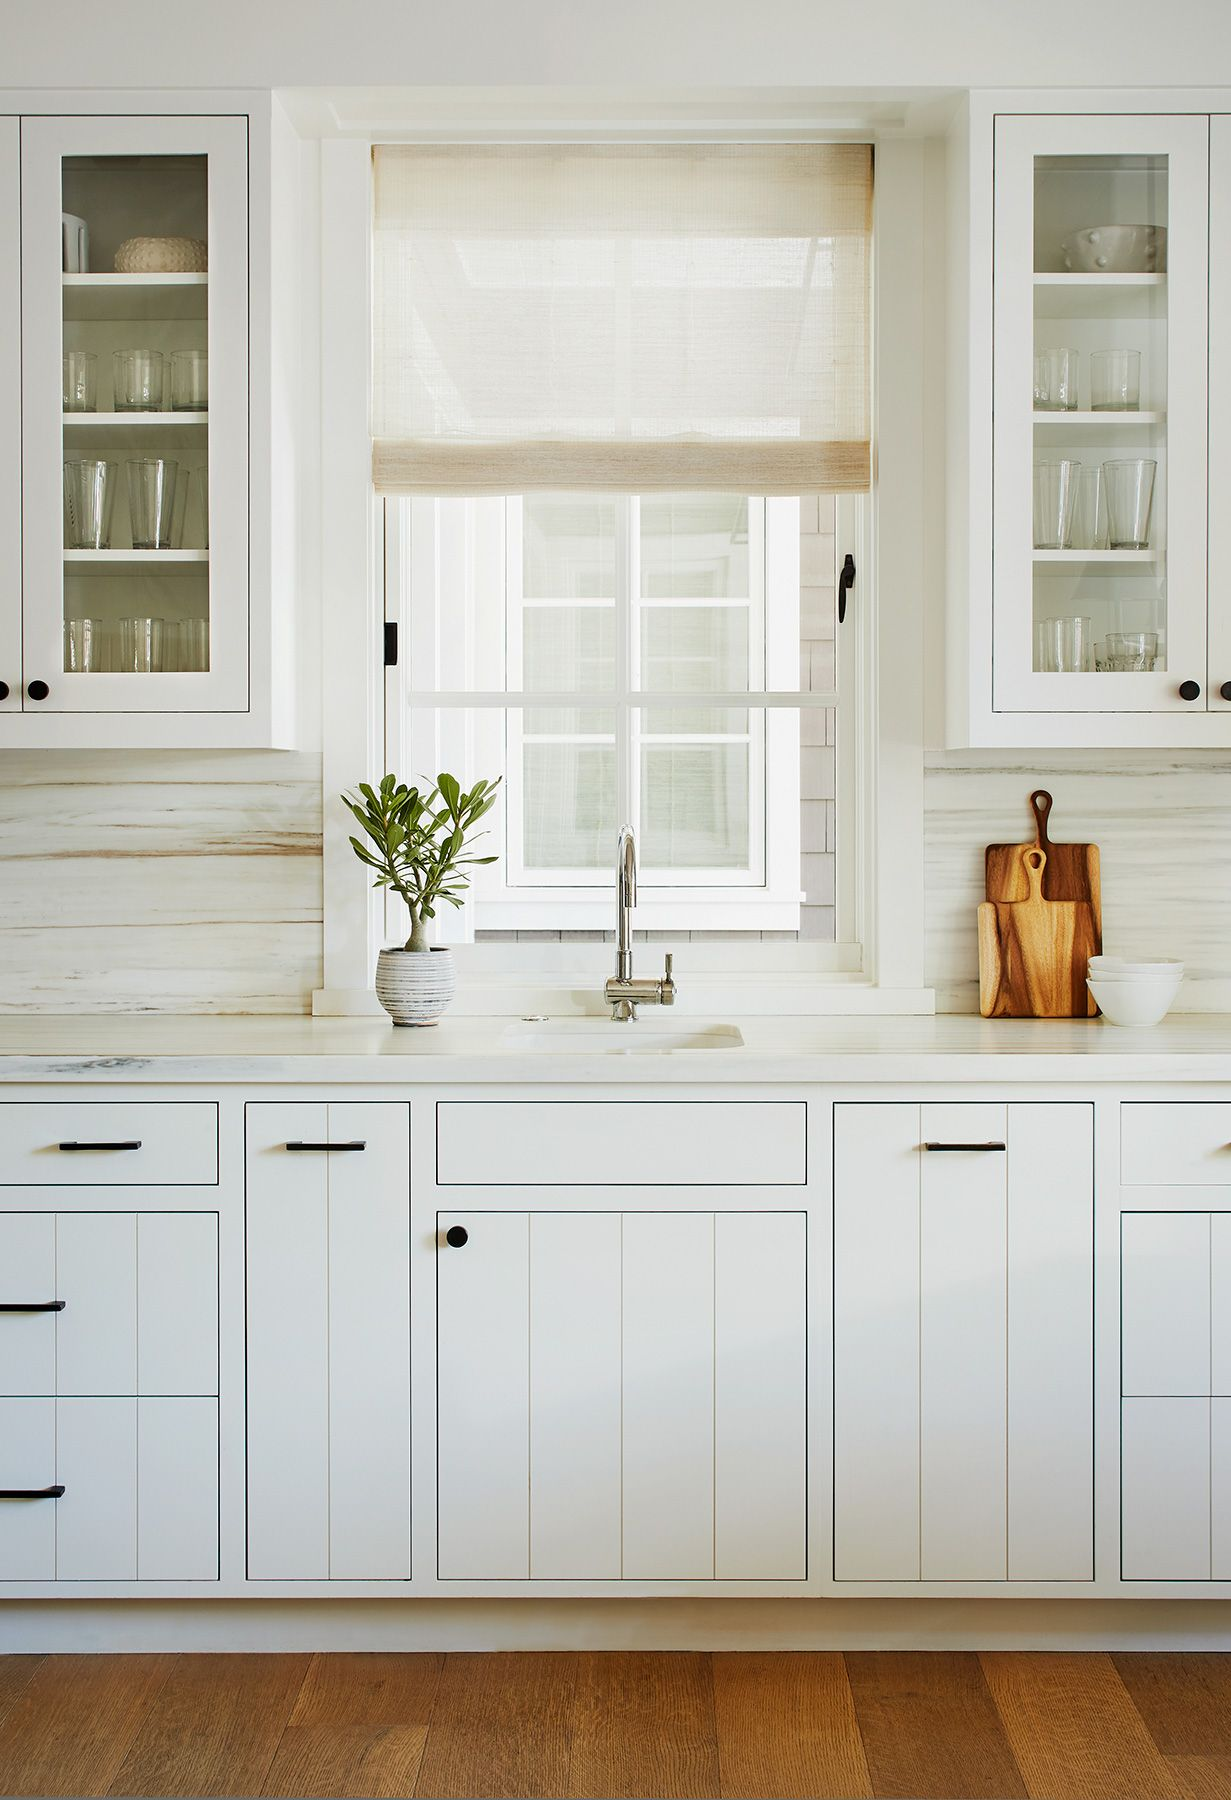 White Tongue And Groove On The Cabinetry Inset Cabinetry White Kitchen Cabinets With Elegant Kitchen Decor Small Kitchen Renovations Glass Kitchen Cabinets